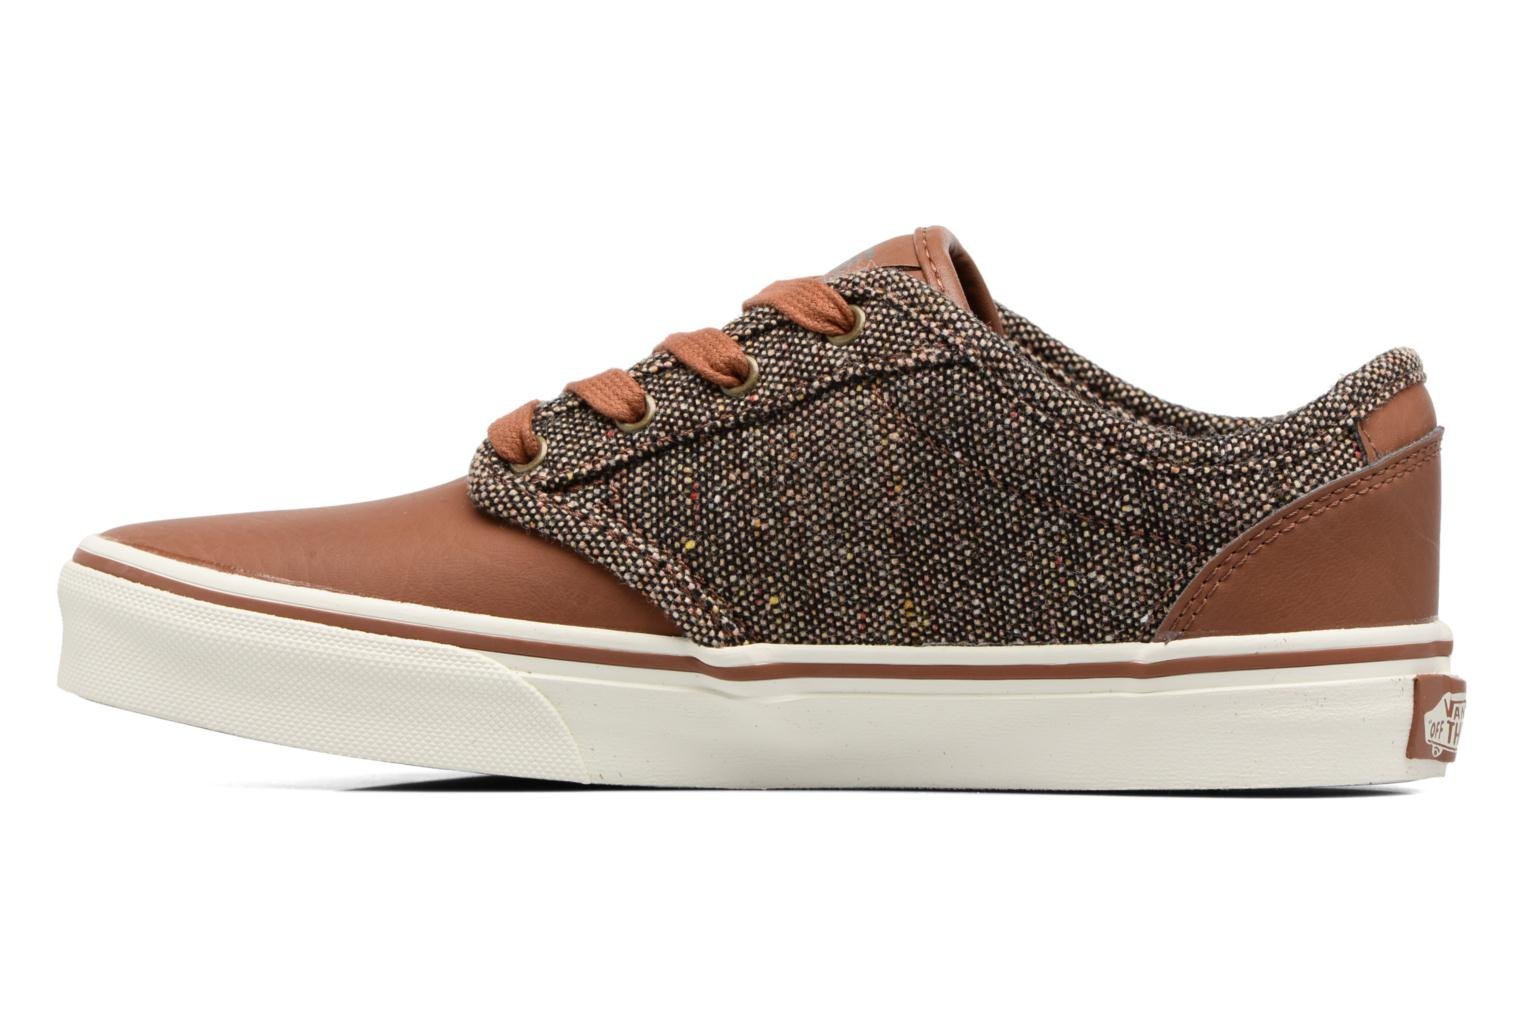 Atwood Deluxe (Tweed) Tortoise Shell/Marshmallow